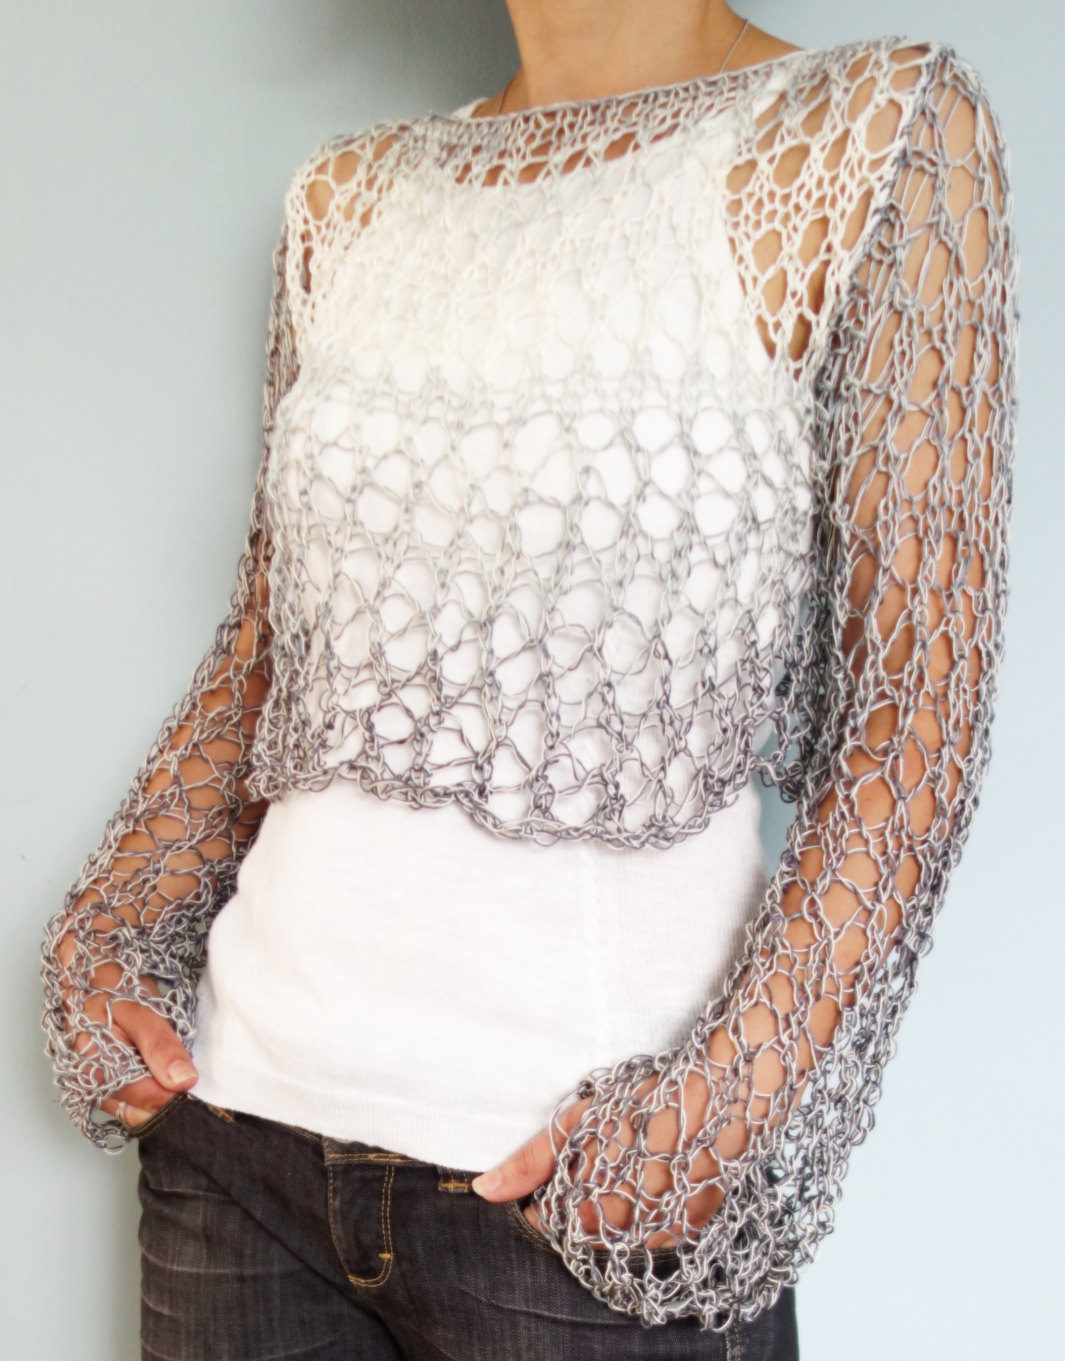 Knitted Tank Top Patterns Openwork Top Knitting Patterns In The Loop Knitting